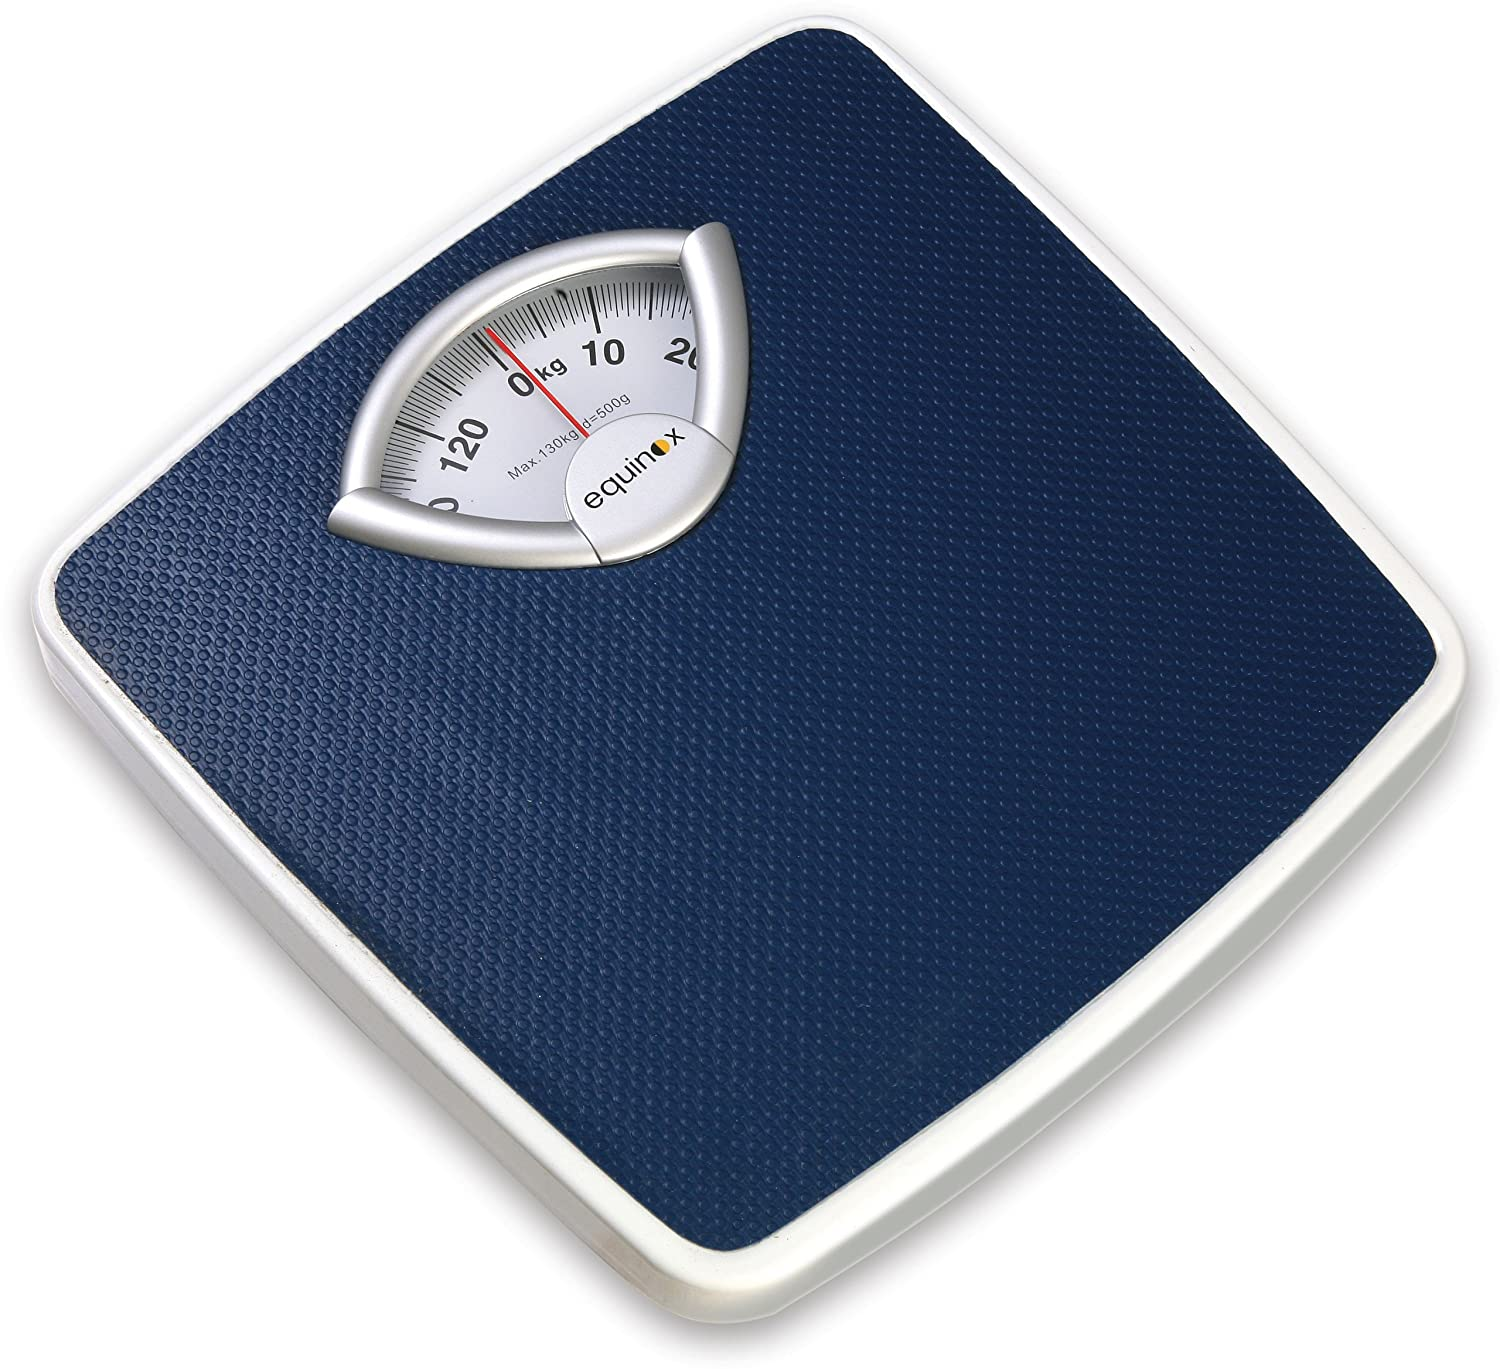 Equinox Weighing Scale BR 9201 Rs 544 Amazon